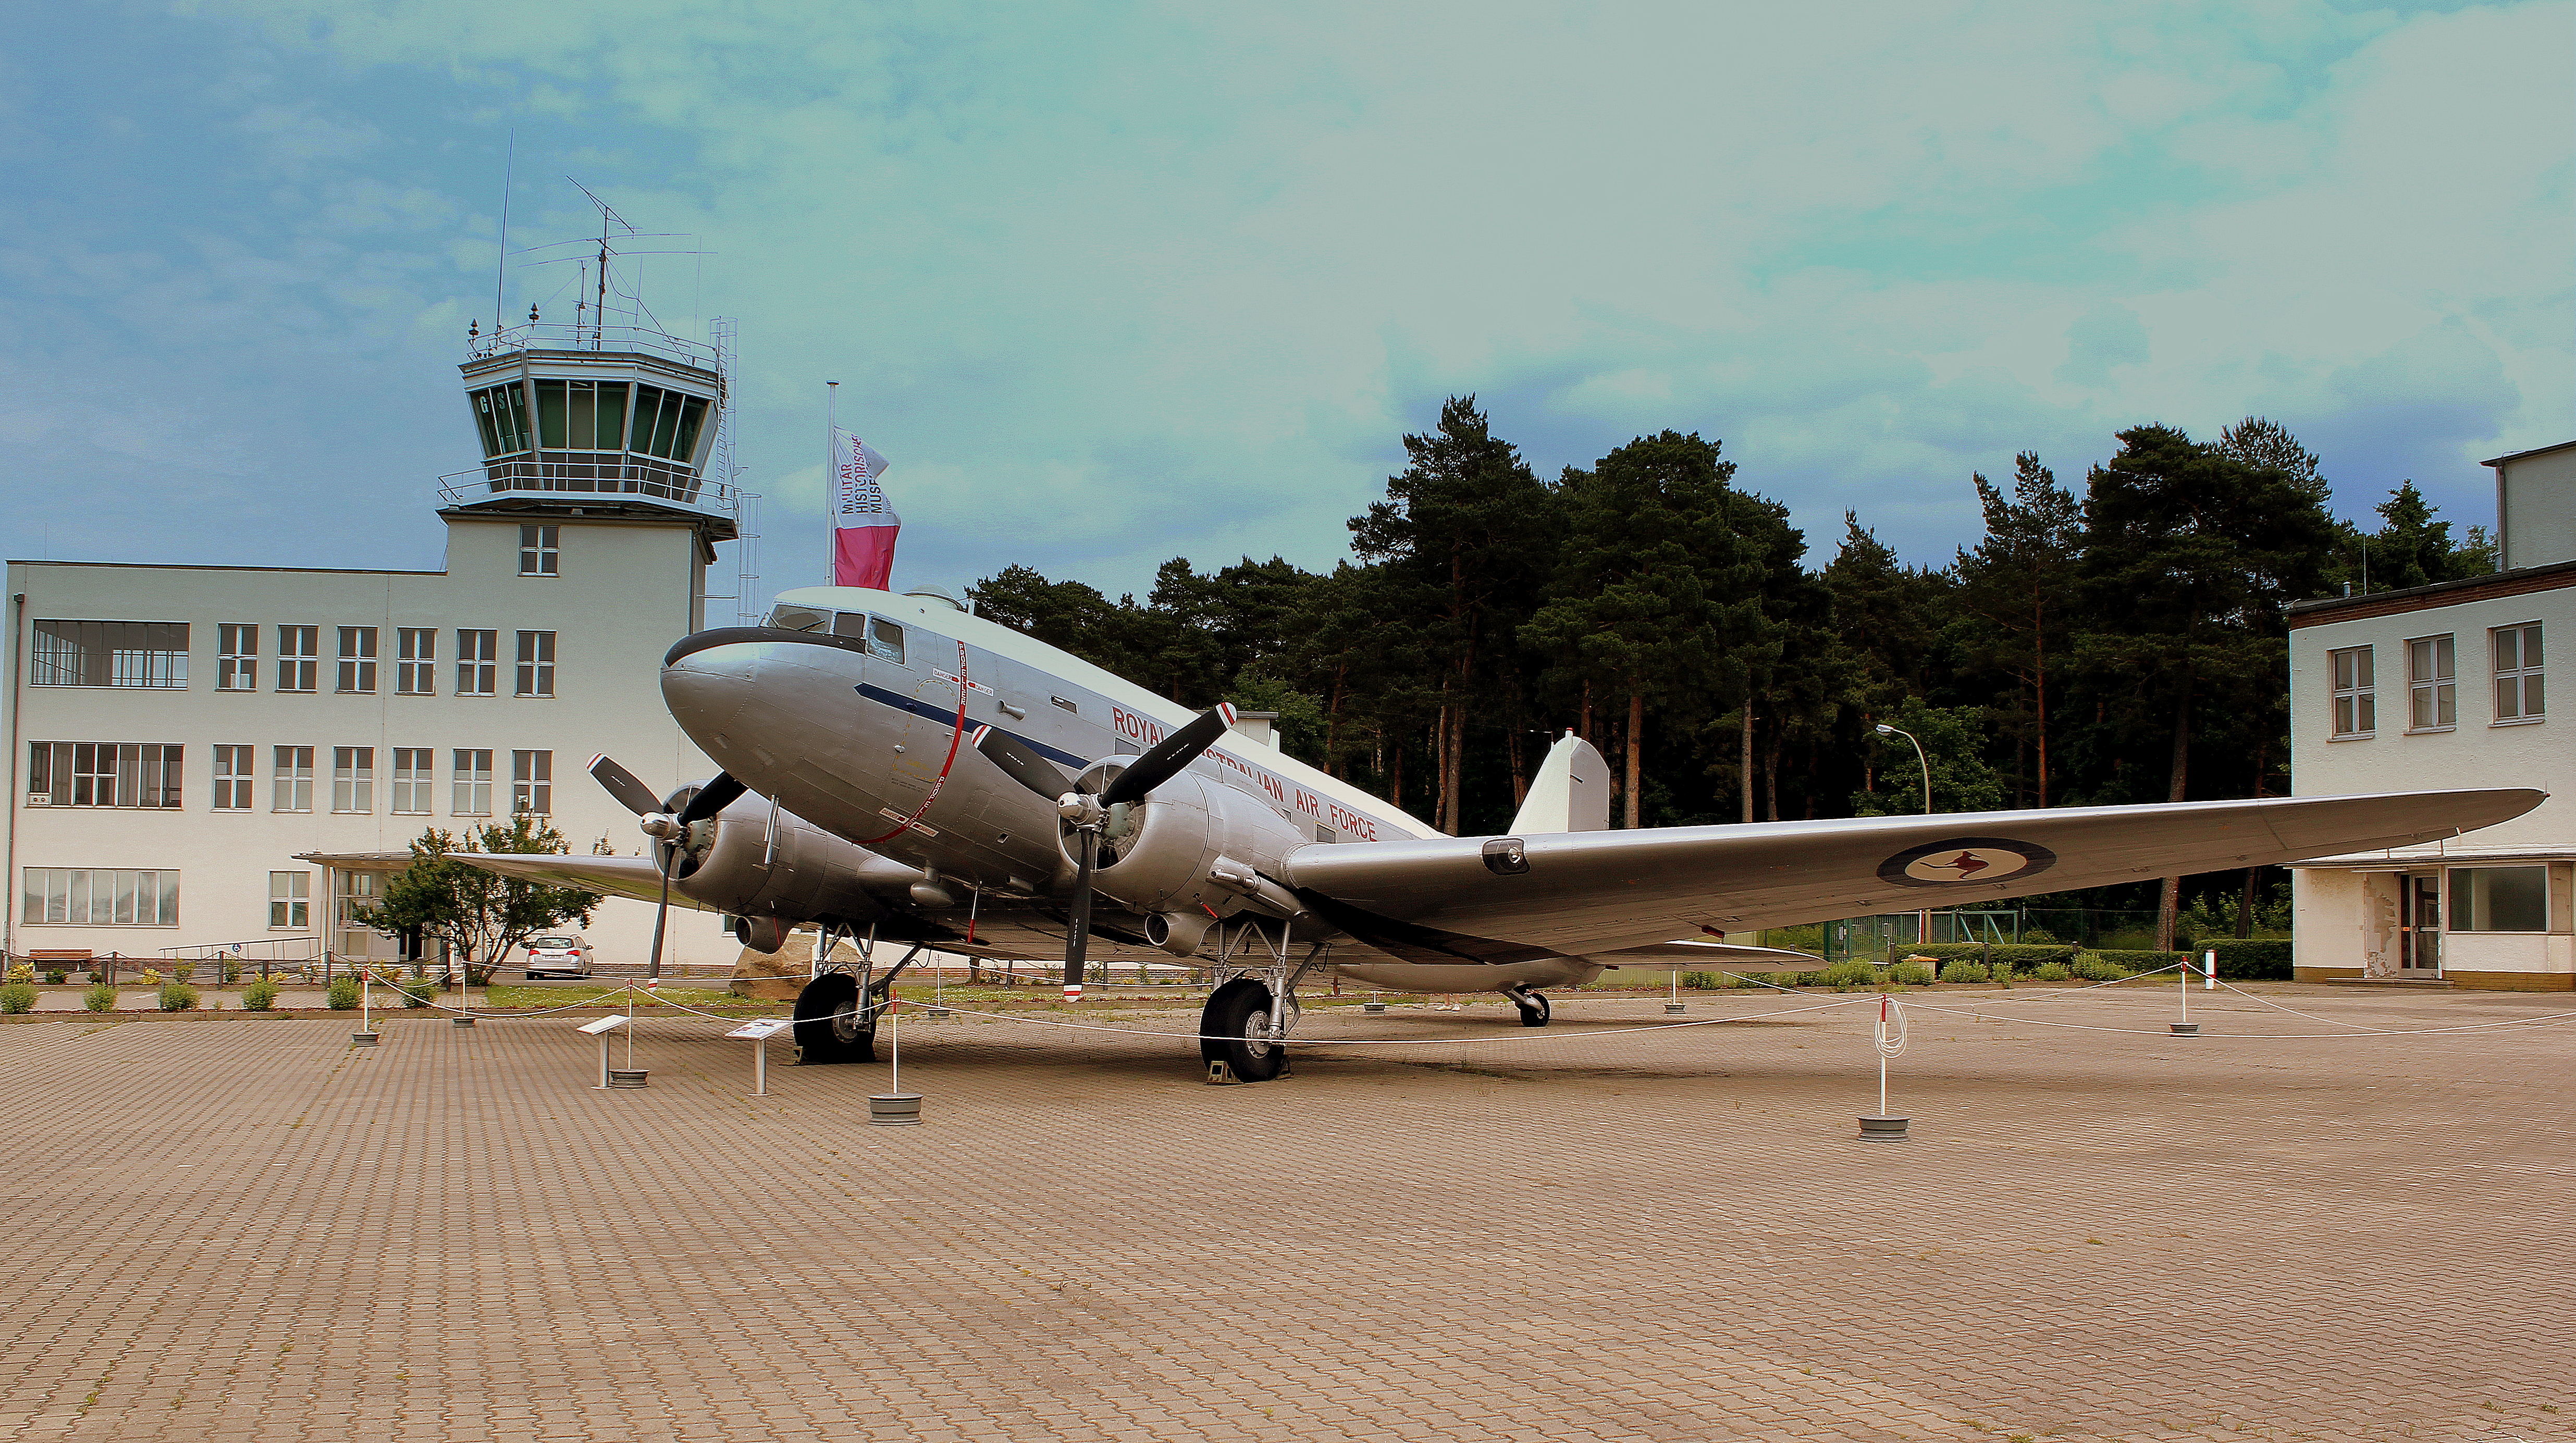 DOUGLAS C47 OF THE ROYAL AUSTRALIAN AIR FORCE AT THE LUFTWAFFEN MUSEUM RAF GATOW BERLIN GERMANY JUNE 2013 (9107076297).jpg